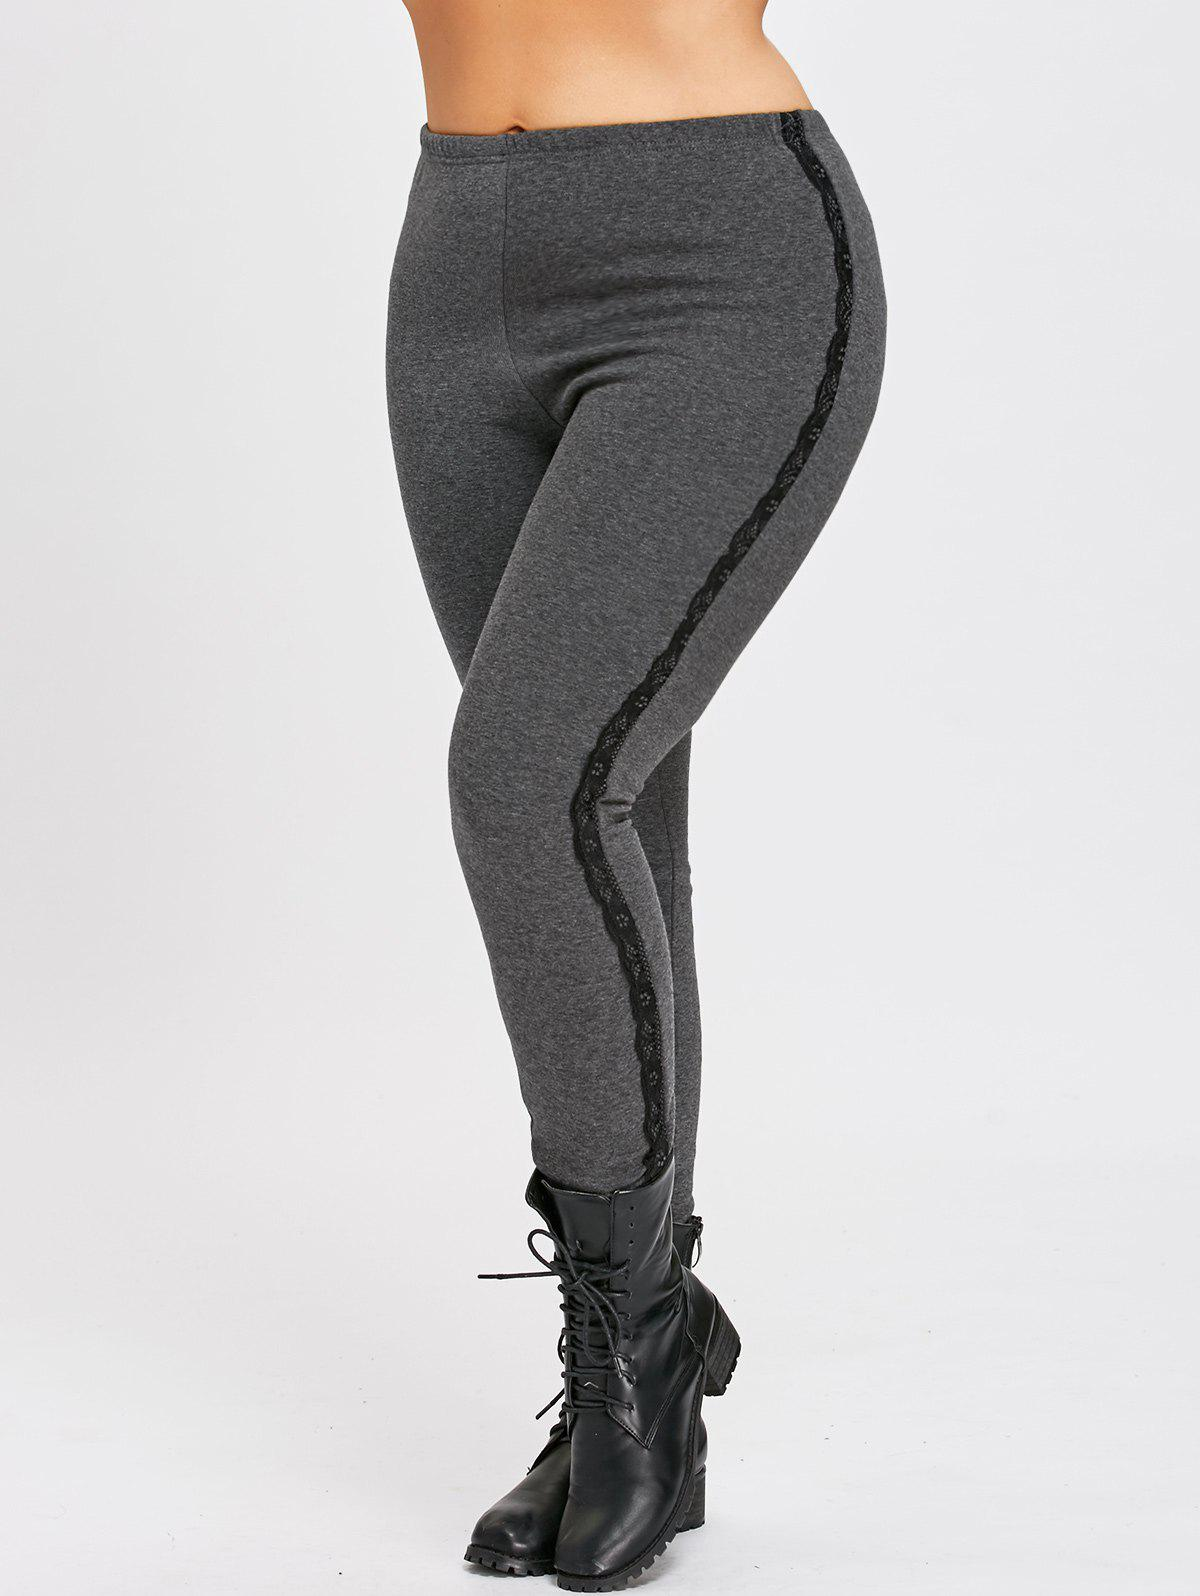 Elastic Waist Plus Size Fleece Lined Pants with Lace PanelWOMEN<br><br>Size: 6XL; Color: GRAY; Style: Casual; Length: Normal; Material: Polyester; Fit Type: Skinny; Waist Type: High; Closure Type: Elastic Waist; Pattern Type: Solid; Pant Style: Pencil Pants; Elasticity: Elastic; Weight: 0.4200kg; Package Contents: 1 x Pants;